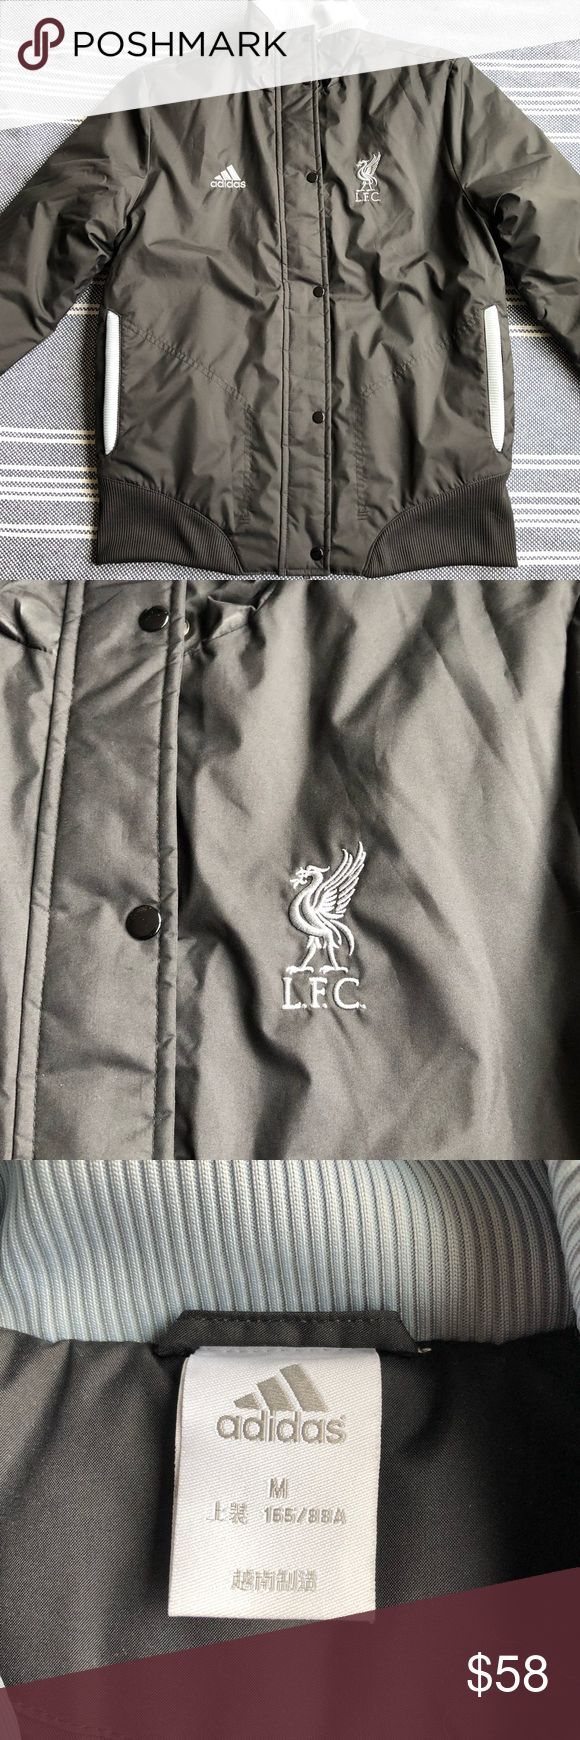 Youth Liverpool FC jacket Perfect condition, Youth medium Adidas Liverpool FC jacket. adidas Jackets & Coats